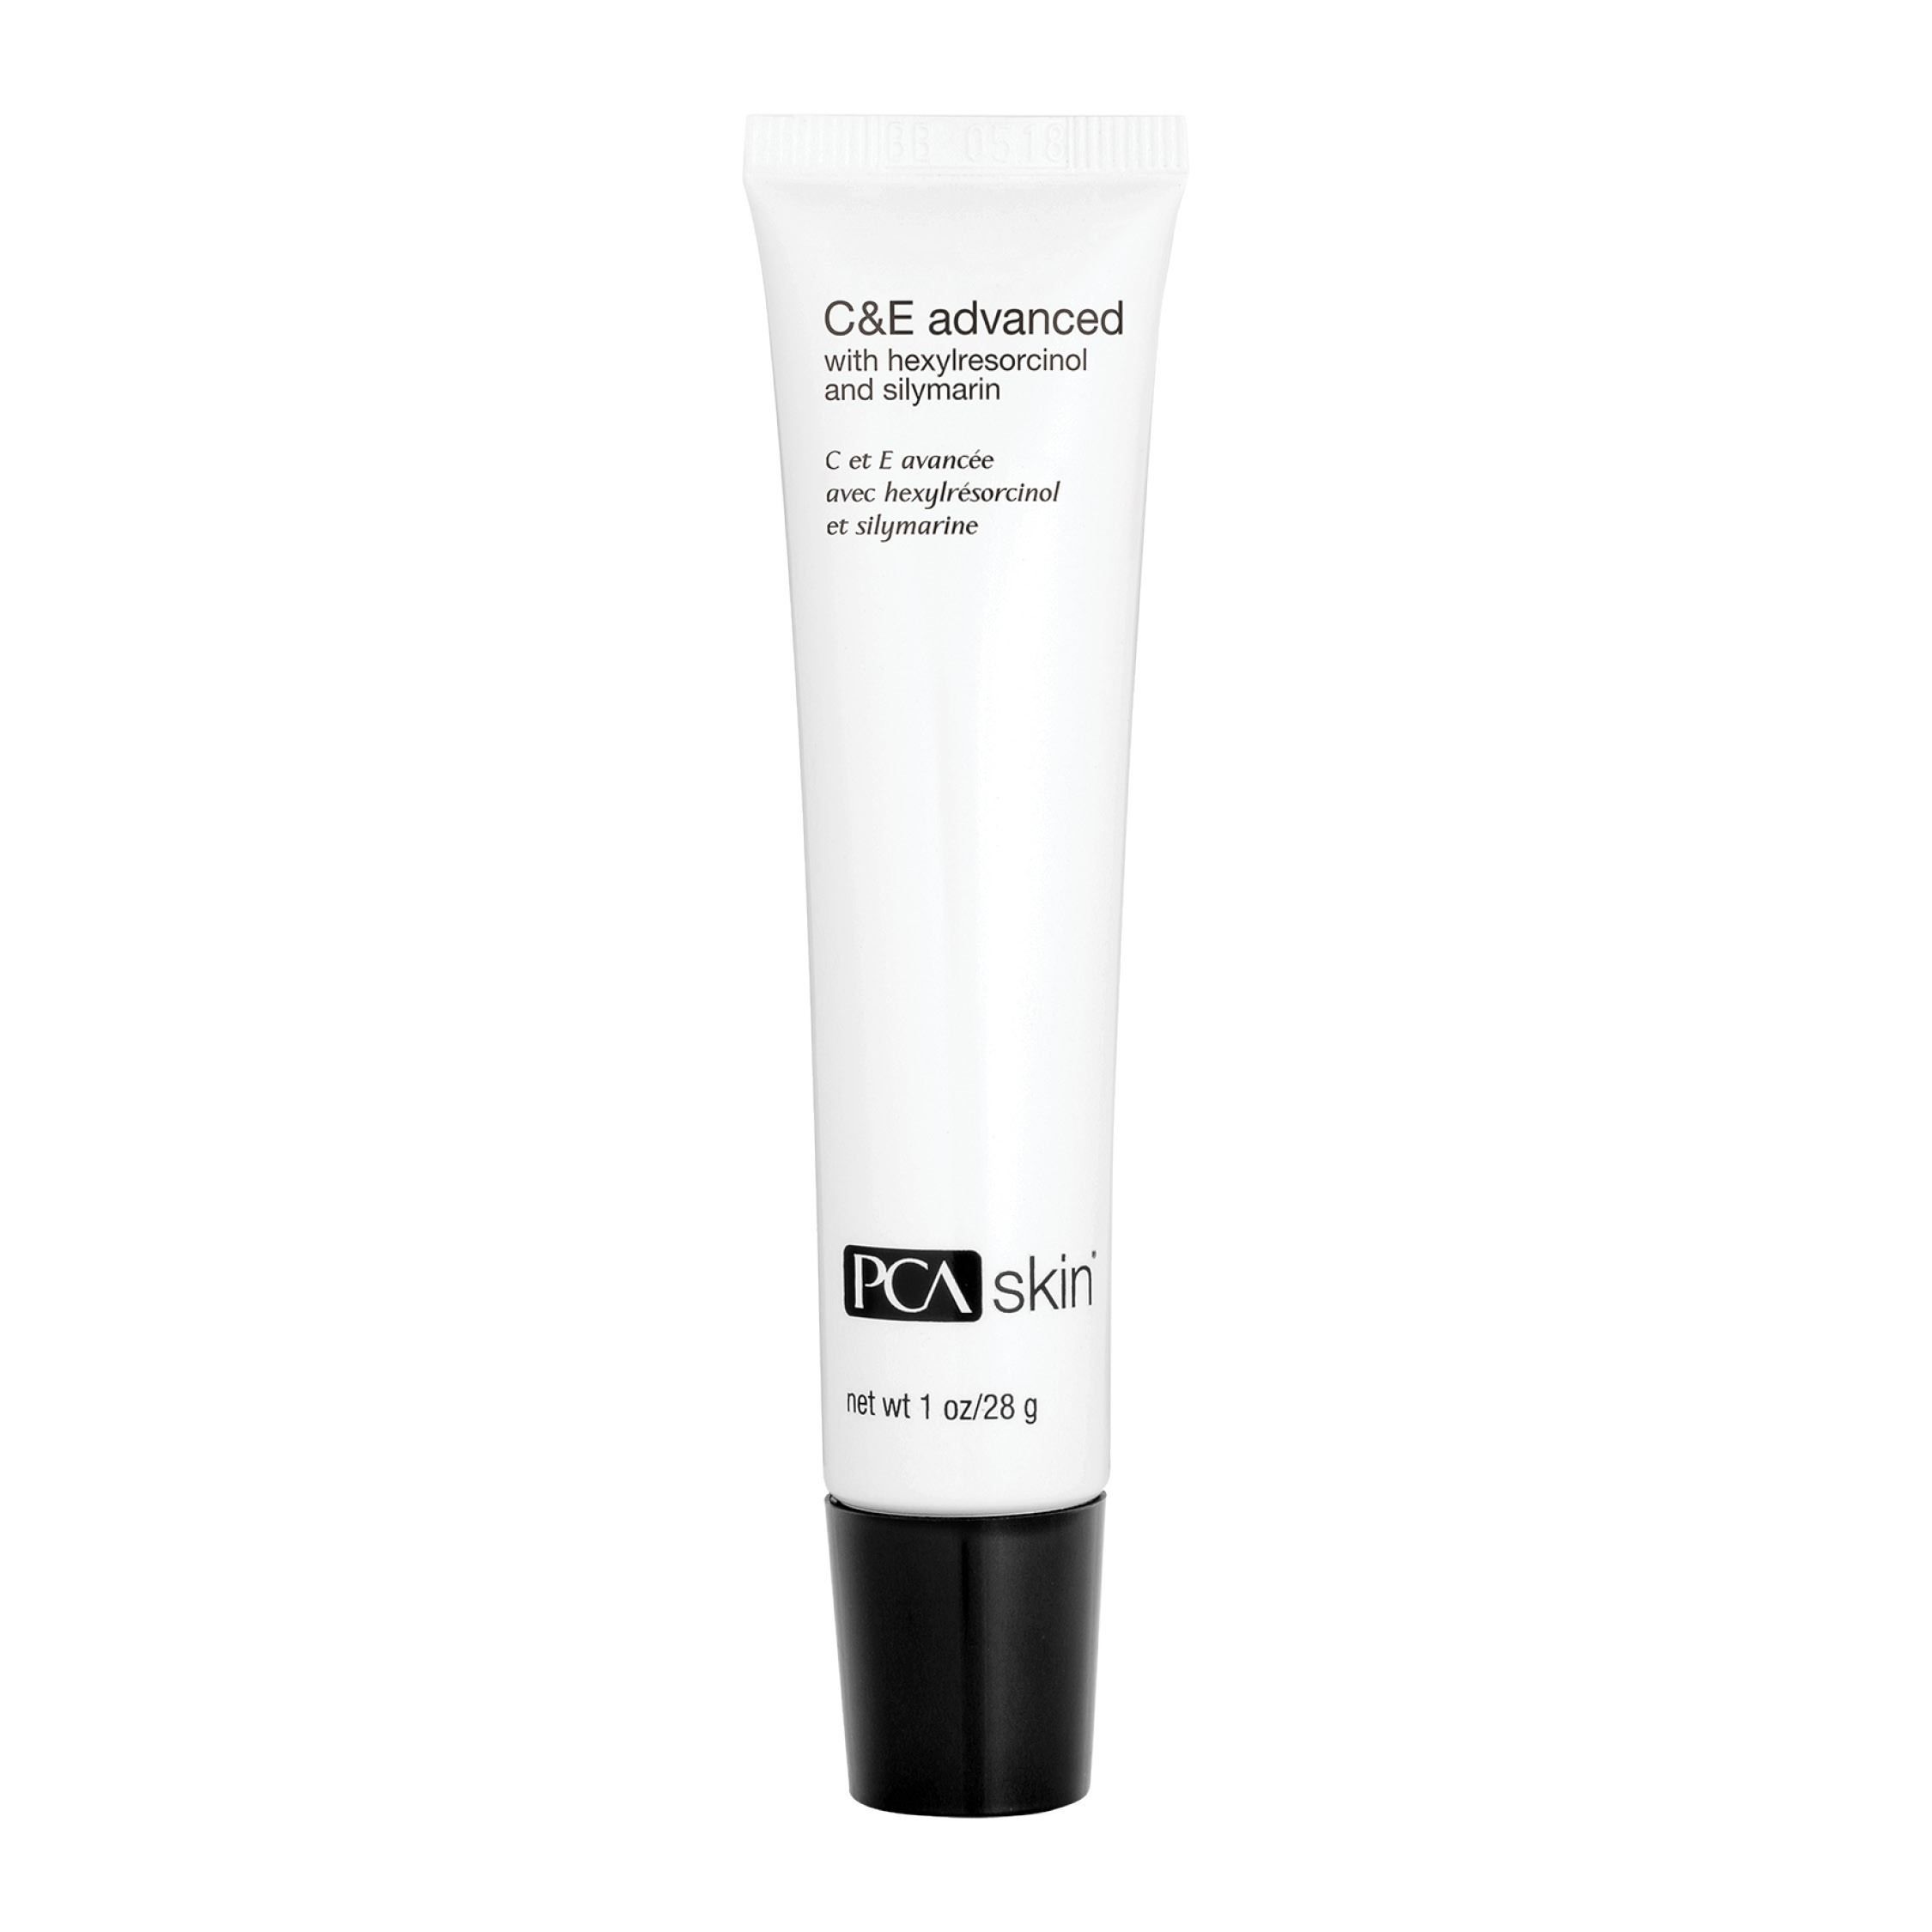 PCA skin C & E Advanced. Corrective serum with calming antioxidant ingredients